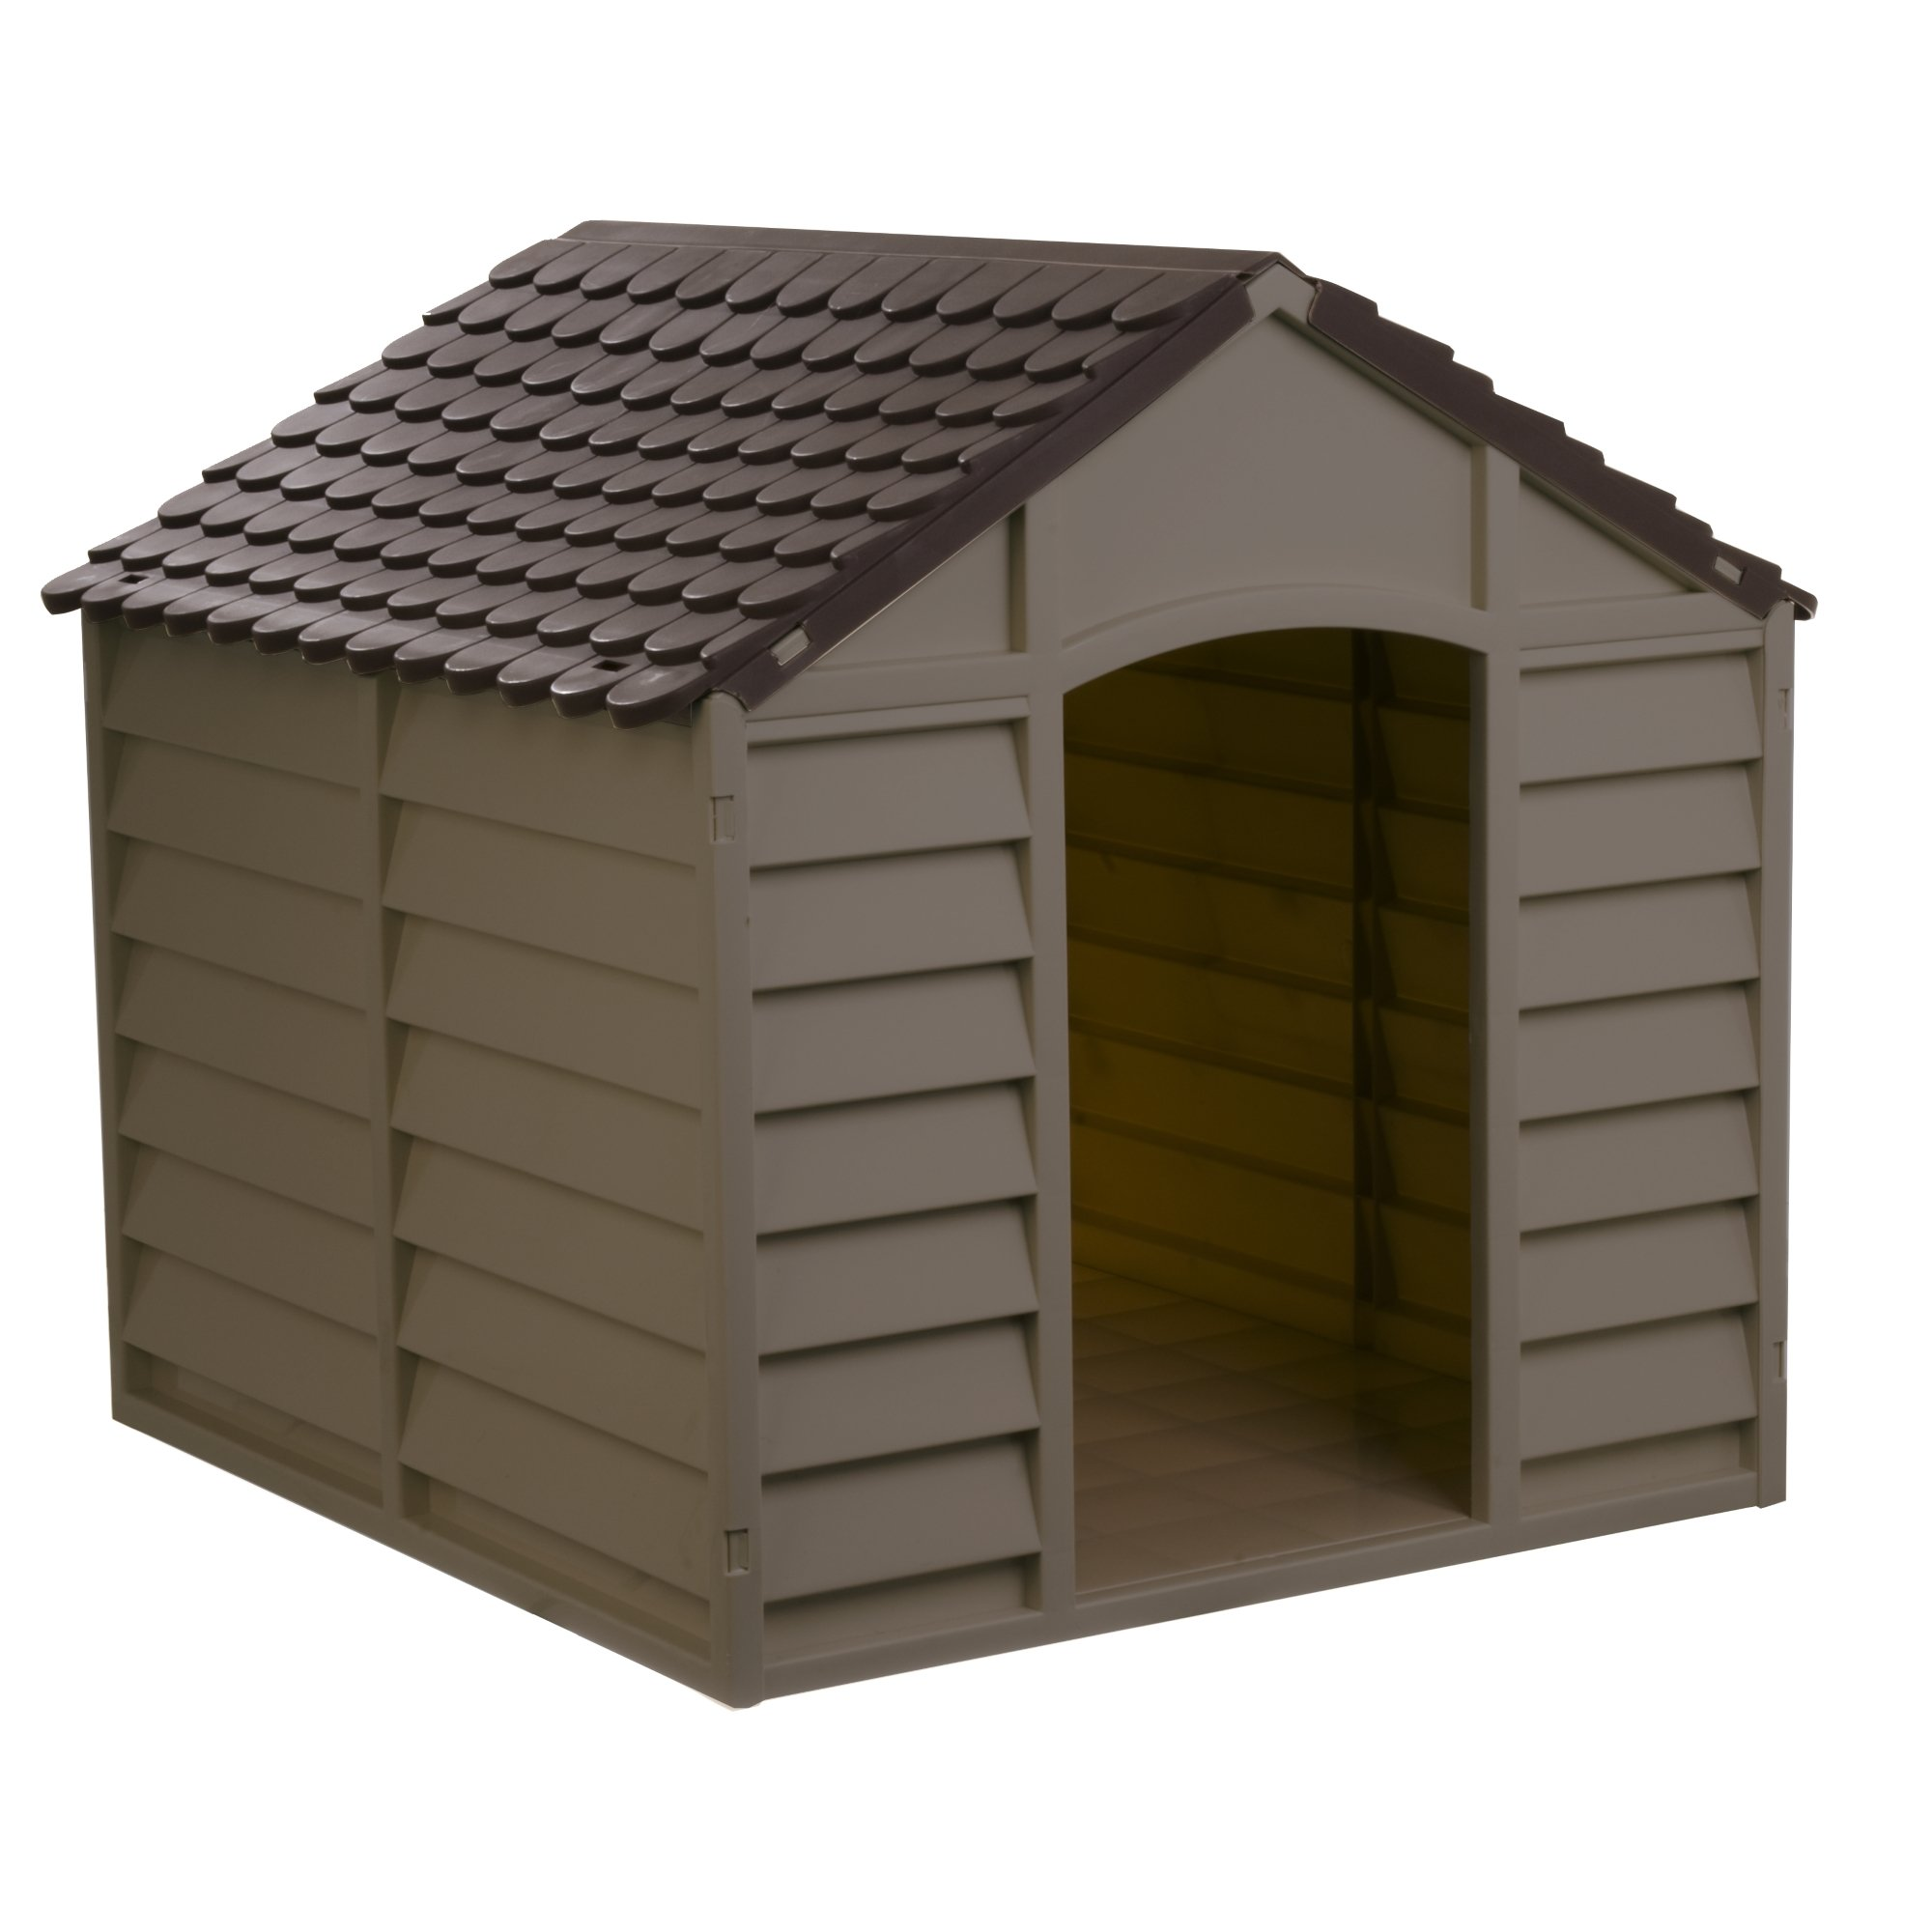 Starplast Mocha / Brown Large Dog House/Kennel by Starplast